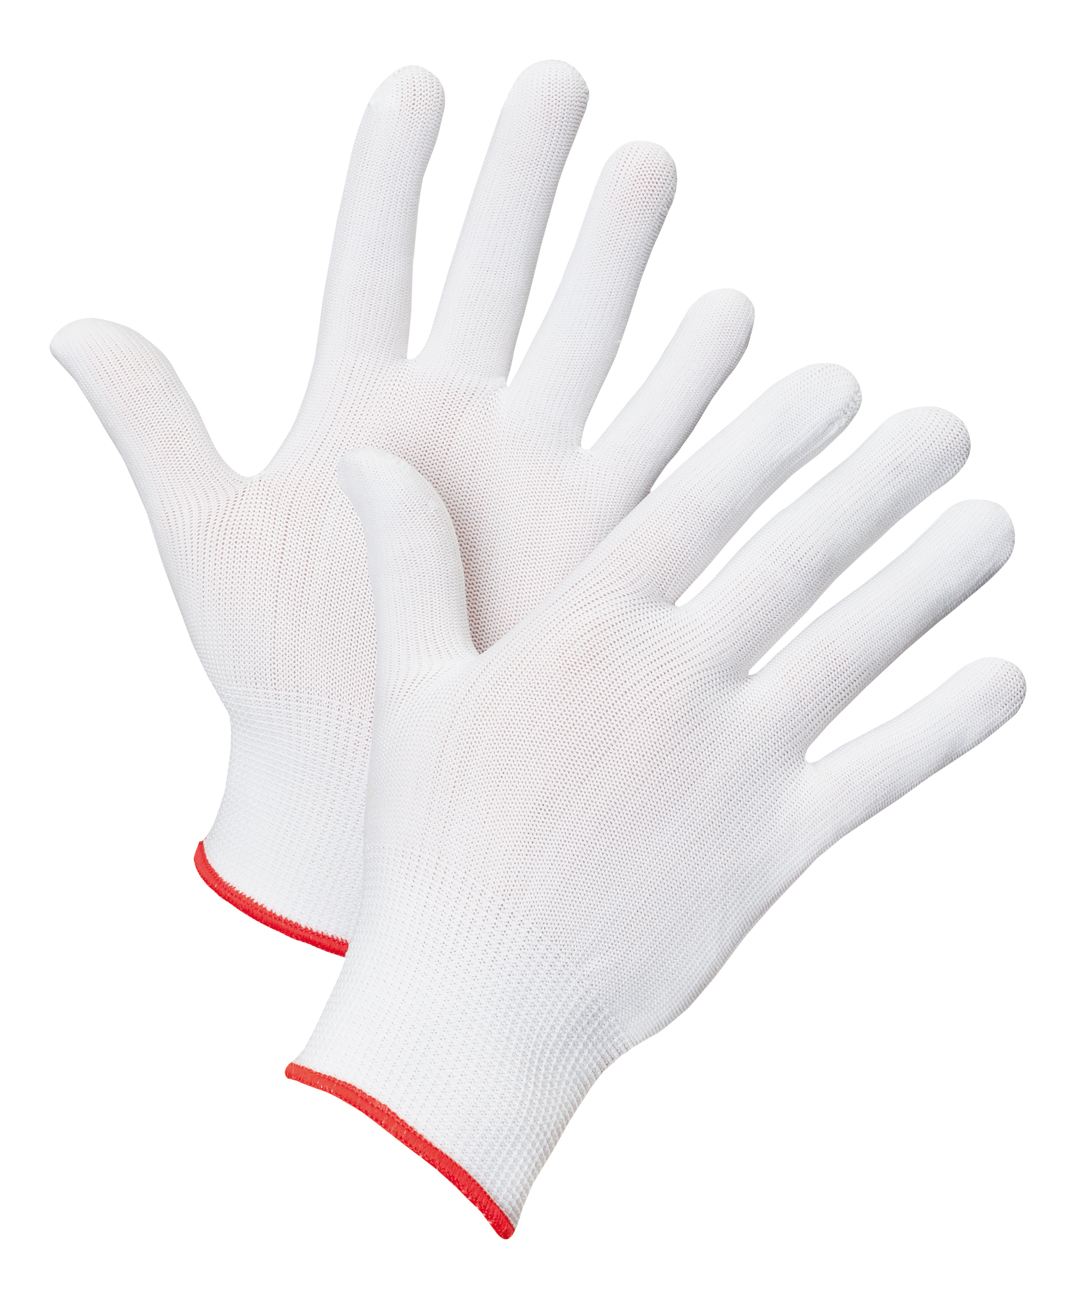 AERO Gloves BaseKnit Optimal 1966